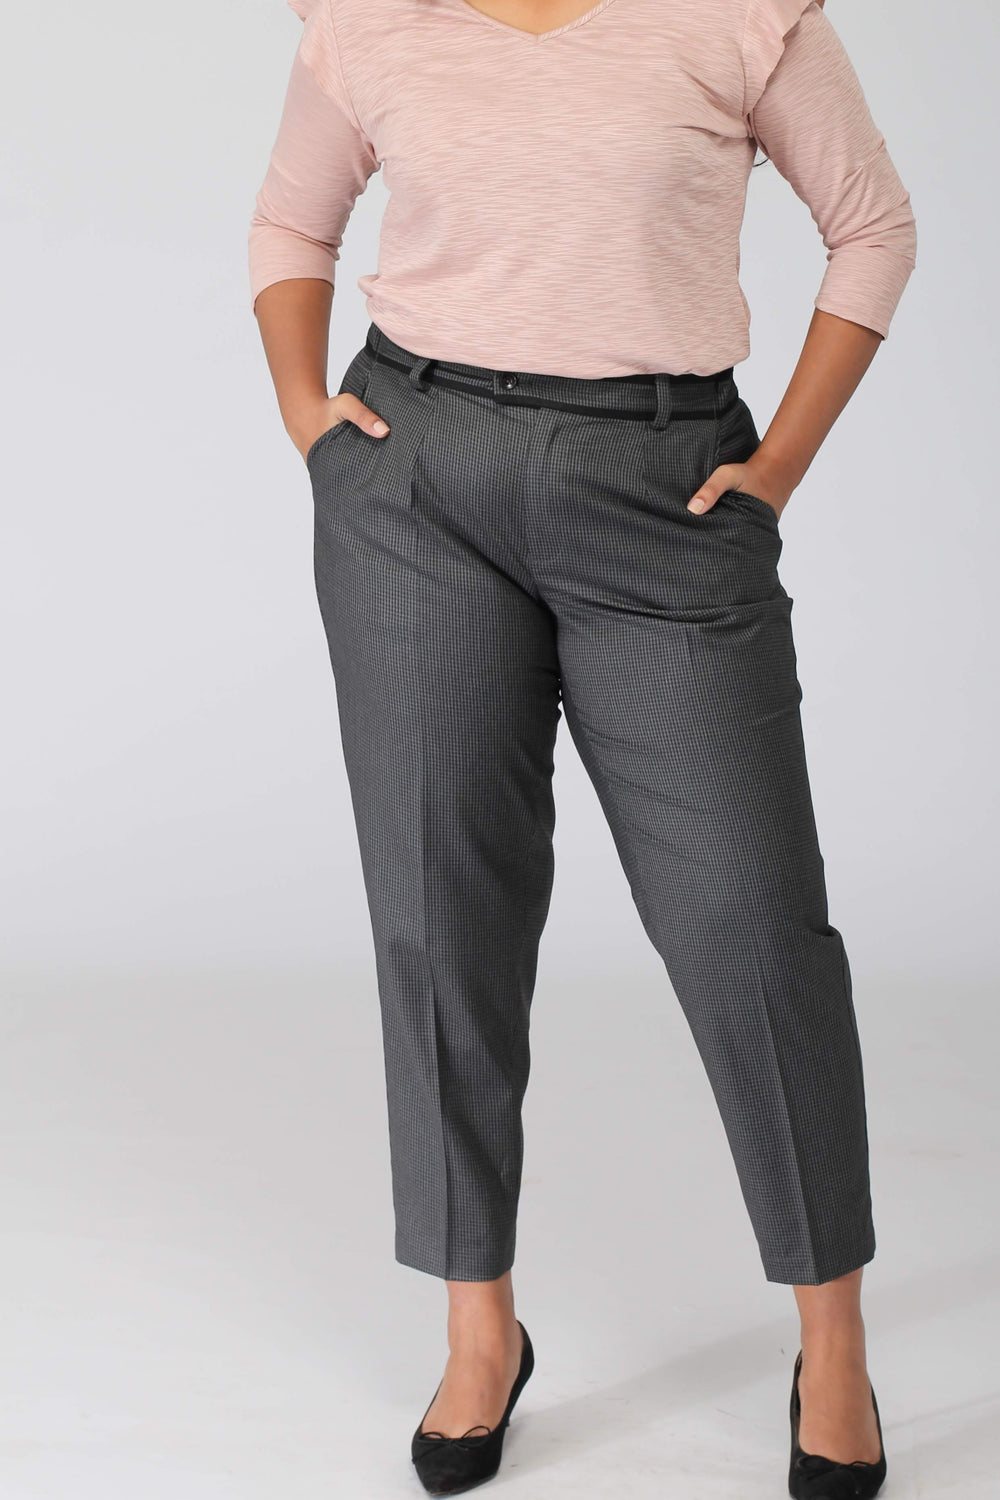 Ithaca Grey Herringbone Pants